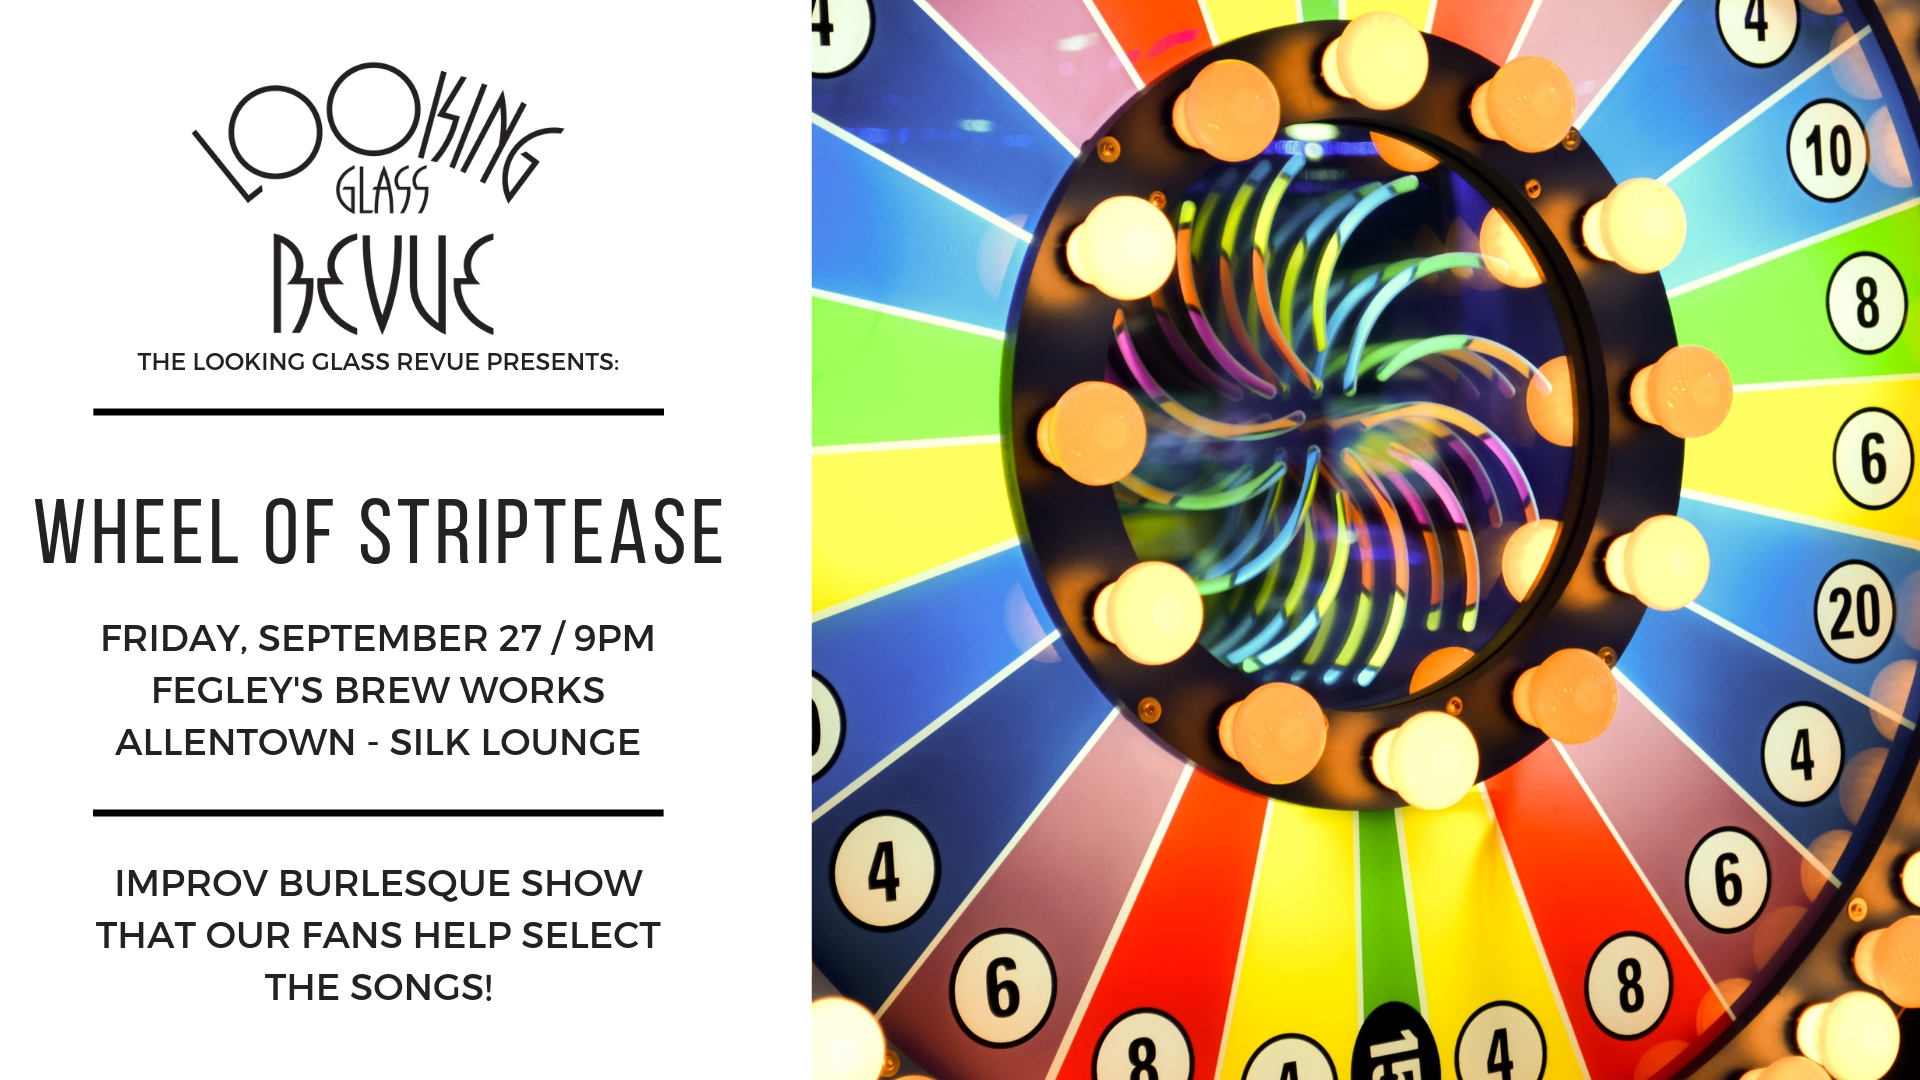 092719_Wheel of Striptease.png